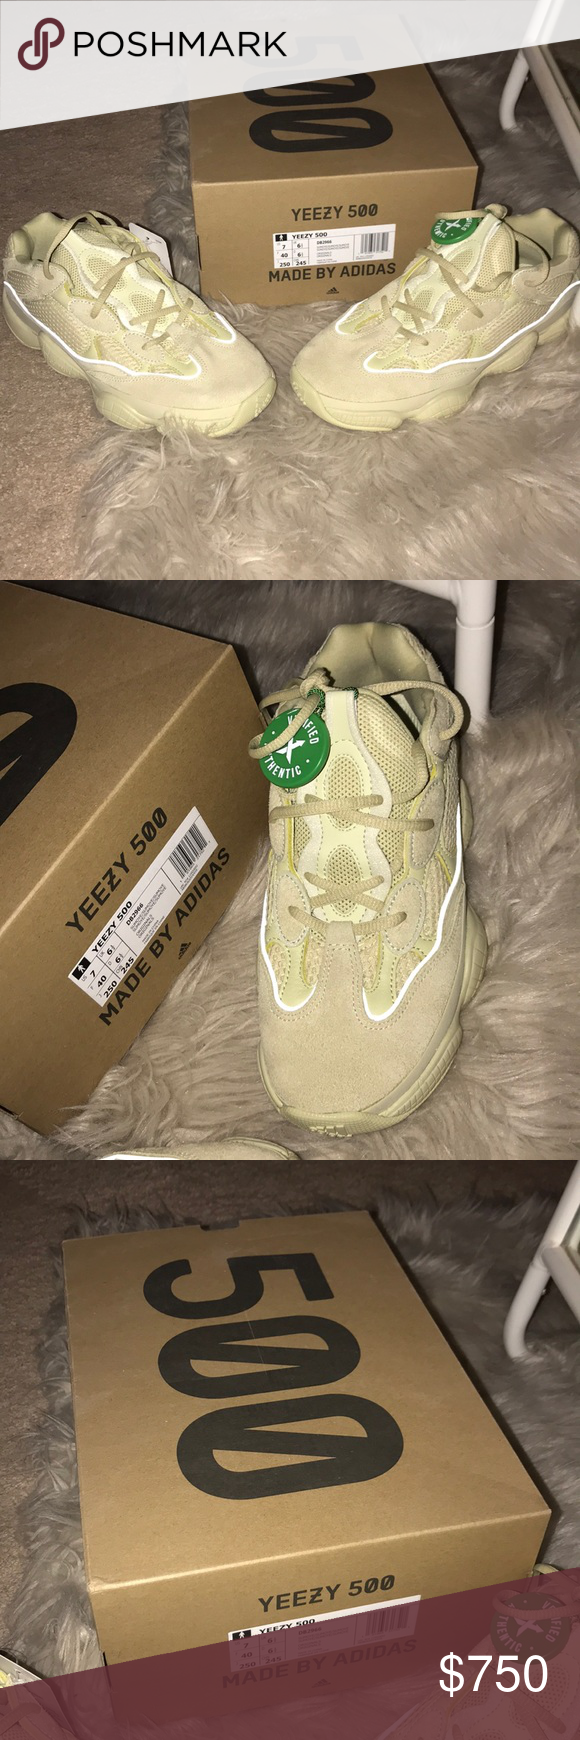 8e561075afa Yeezy Boost 500 Super Moon Yellow Brand Spanking New Yeezy Boost 500 s  VERIFIED AUTHENTIC TAG ON IT WITH NEW BOX AND TAGS Yeezy Shoes Sneakers